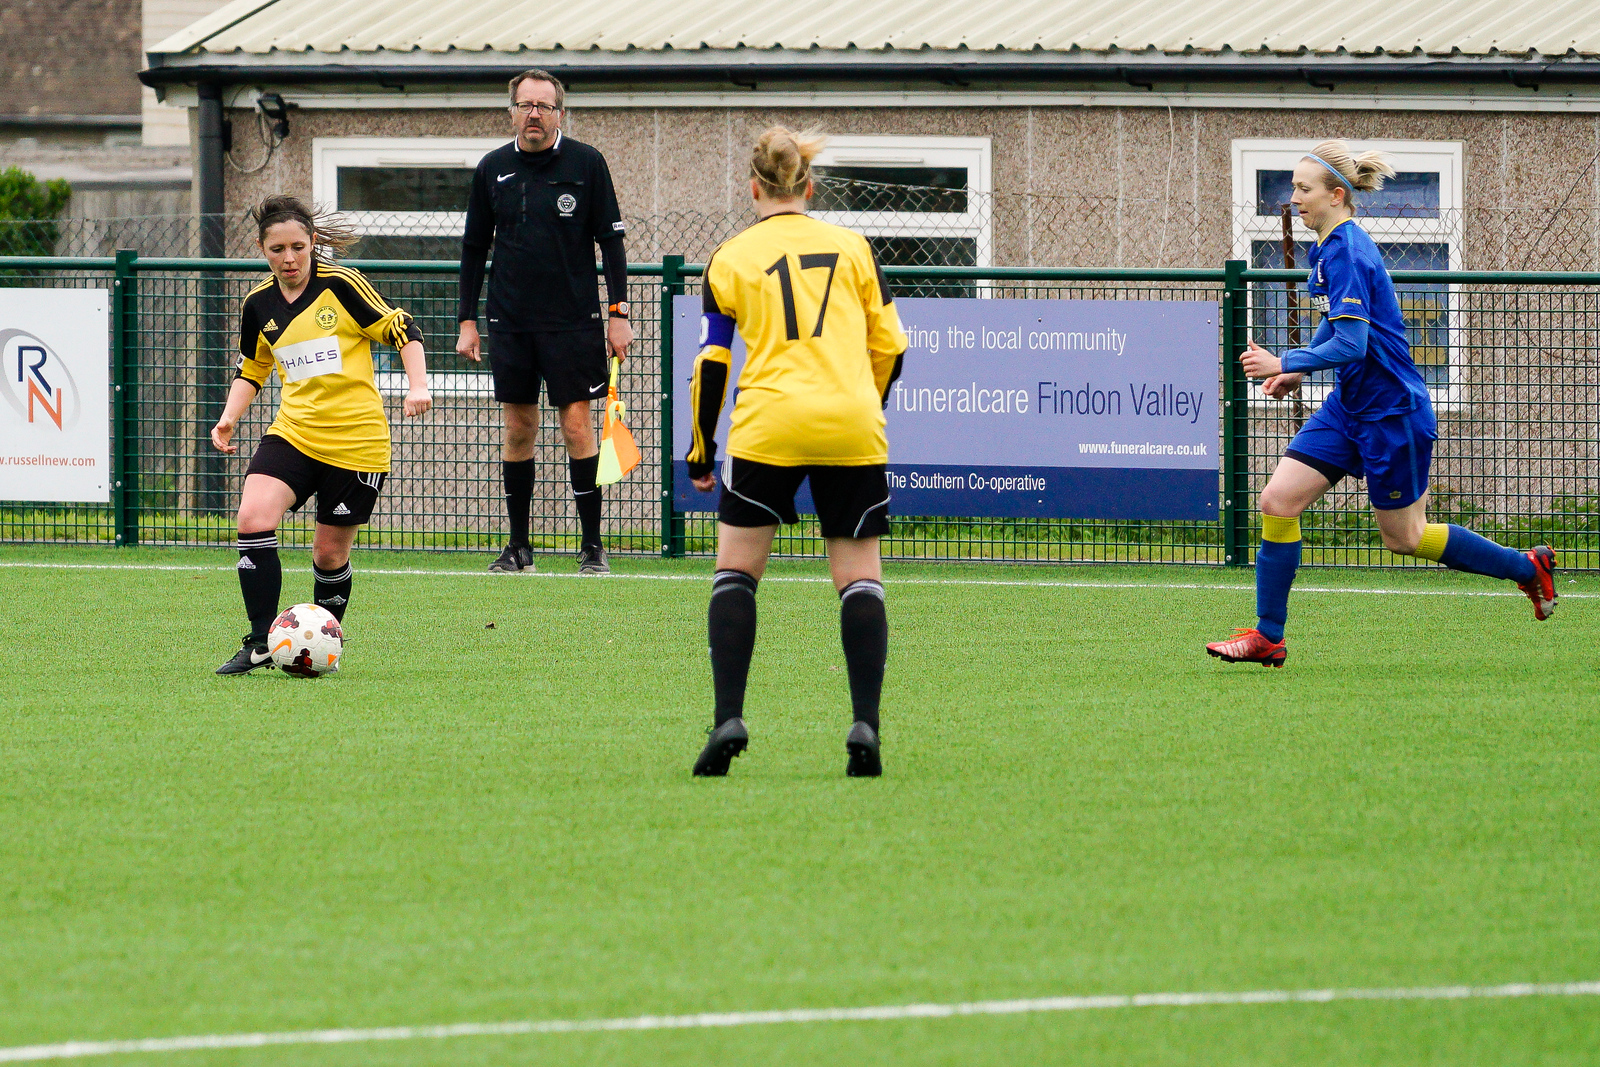 Crawley Wasps Ladies vs AFC Wimbledon on April 29, 2018 at Steyning Town Football Club, Steyning. Photo: Ben Davidson, www.bendavidsonphotography.com